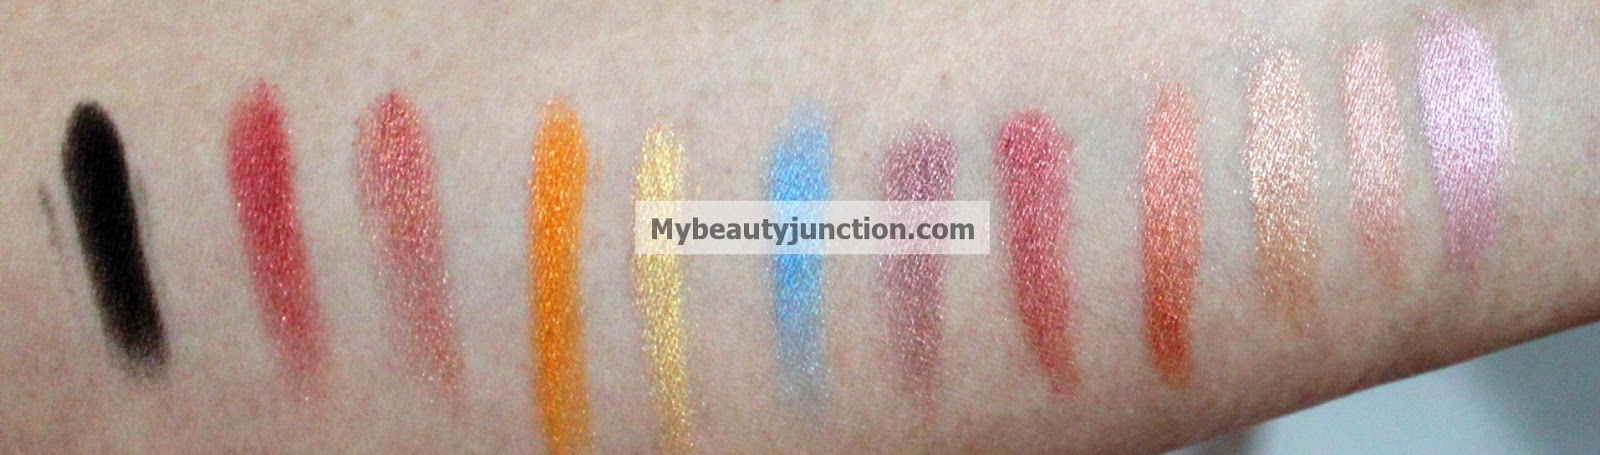 Sleek iDivine Sunset eyeshadow palette swatches and review